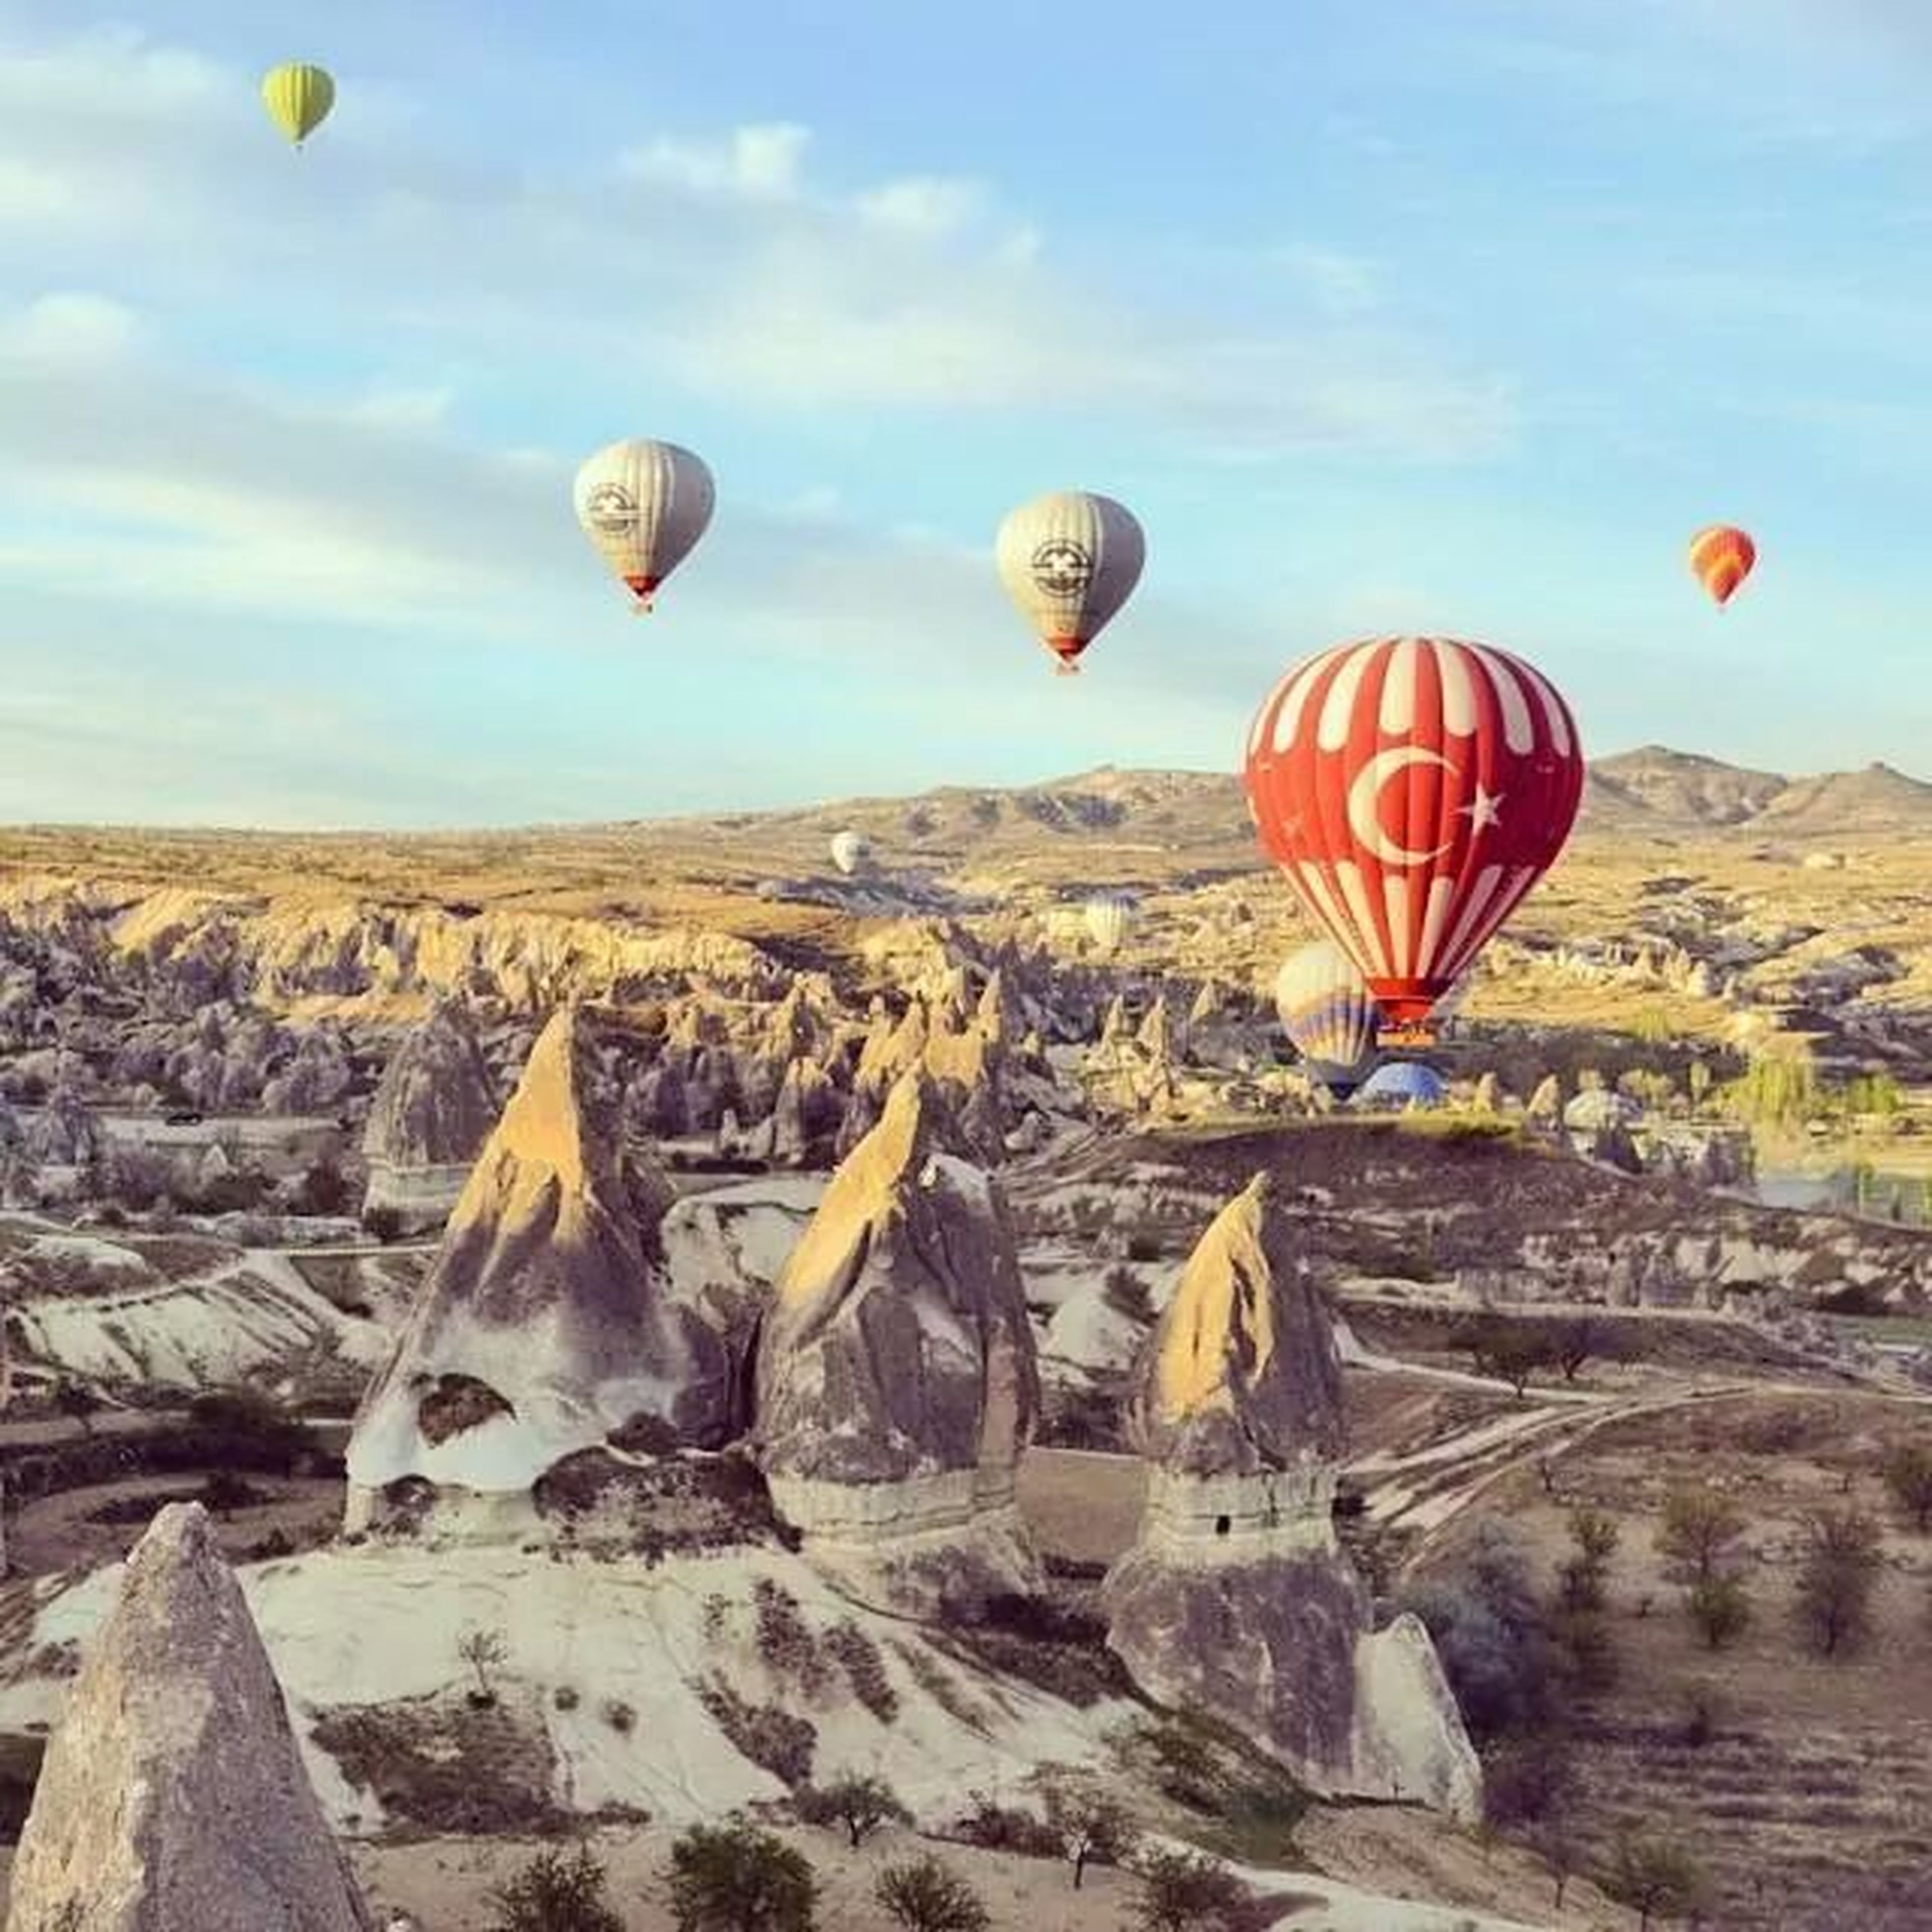 hot air balloon, mid-air, flying, sky, parachute, adventure, landscape, scenics, paragliding, tranquil scene, tranquility, extreme sports, leisure activity, sport, nature, transportation, multi colored, beauty in nature, rock - object